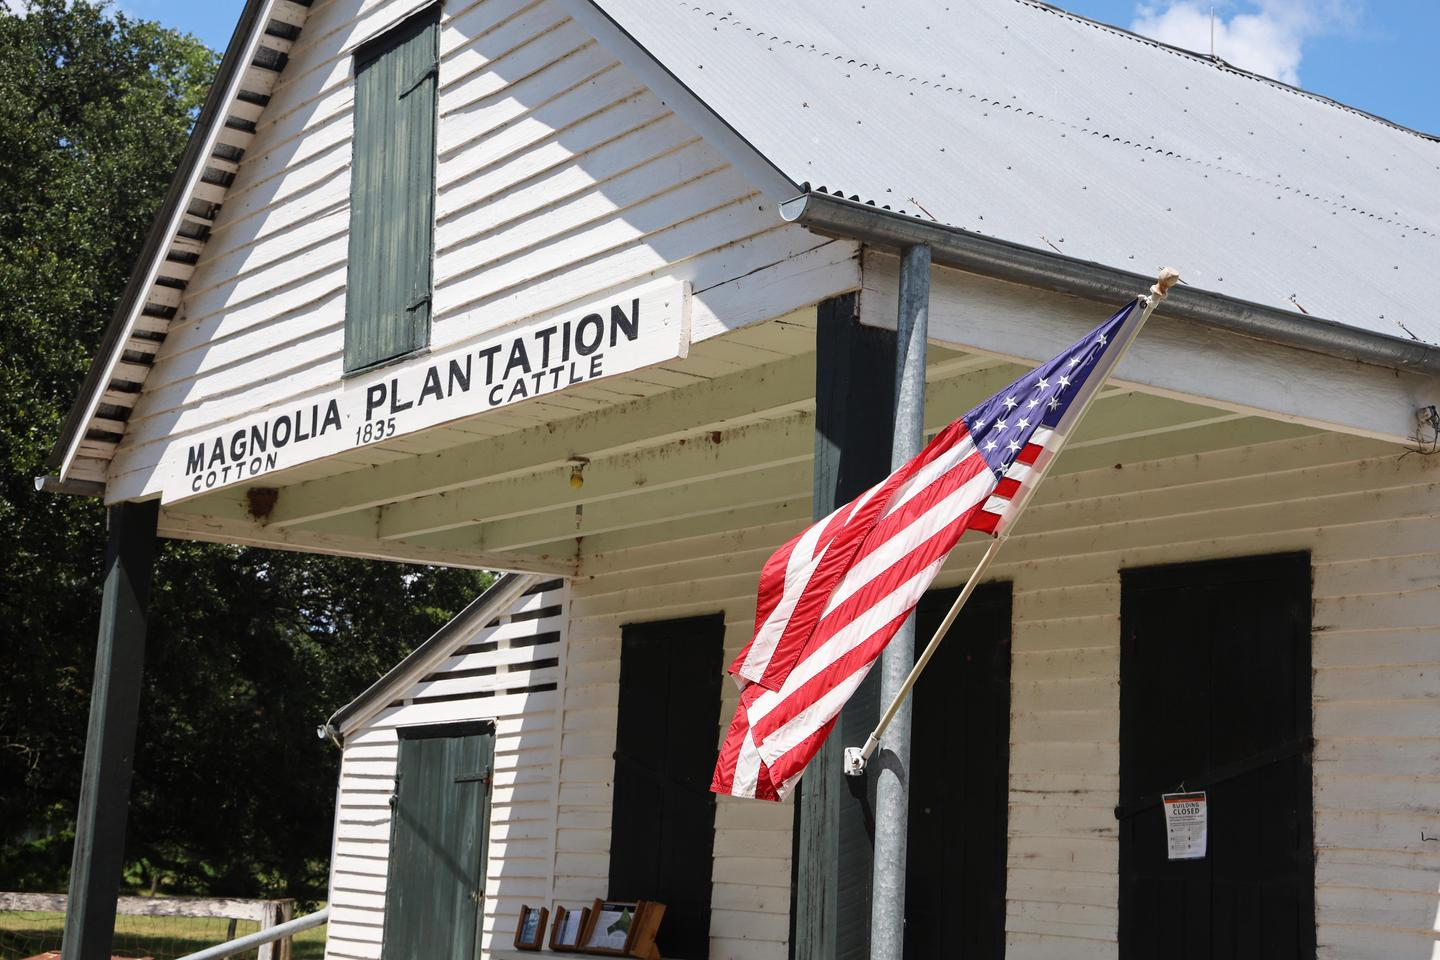 Magnolia Plantation StoreThe Magnolia Store houses visitor restrooms and passport stamps.